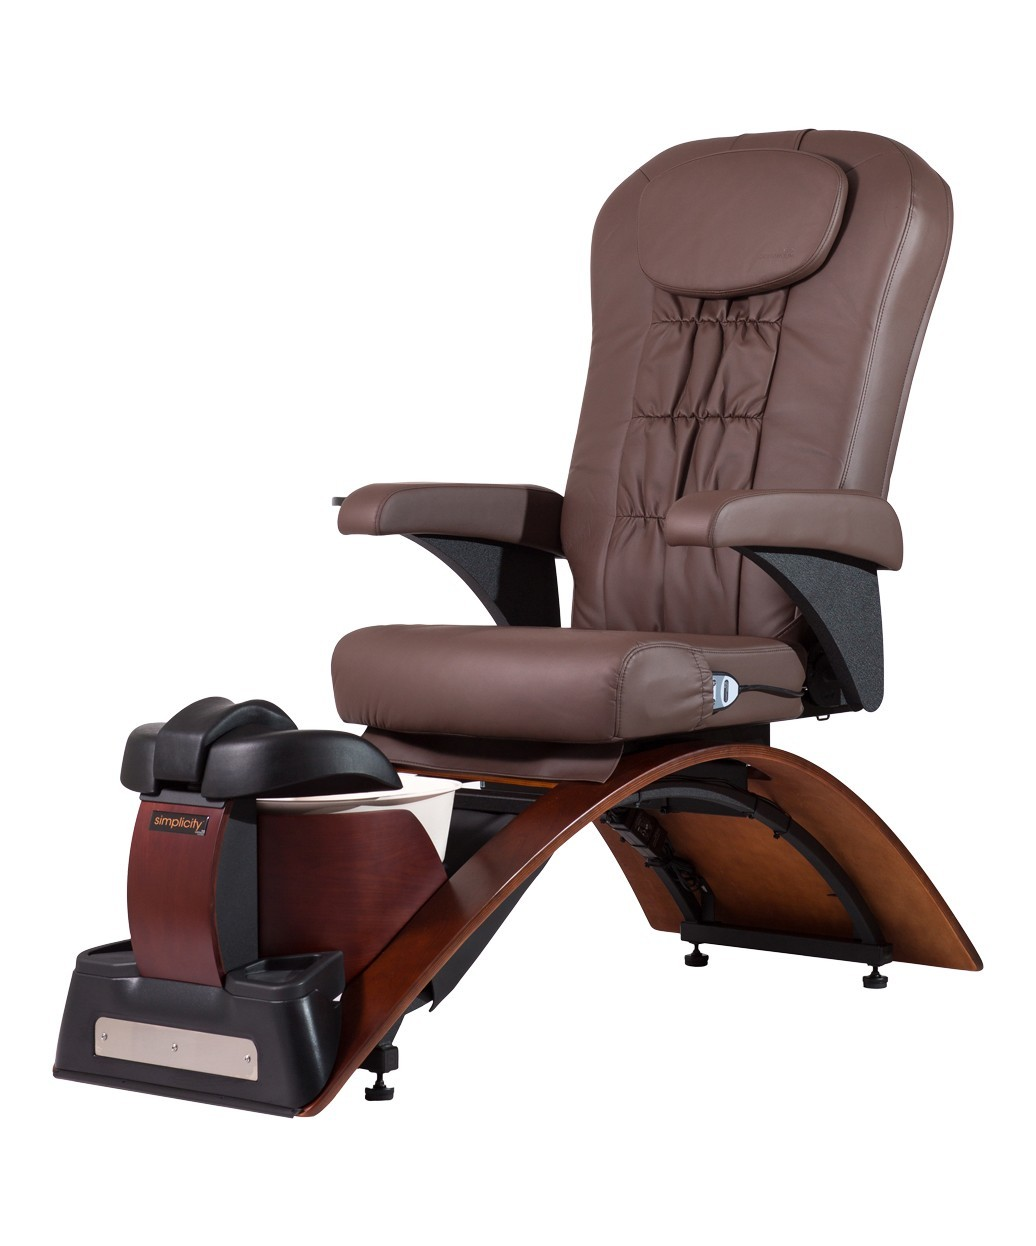 Simplicity Pedicure Chair From Continuum Footspas  sc 1 st  Spa Equipment & Pedicure Spa Chairs Manicure Tables